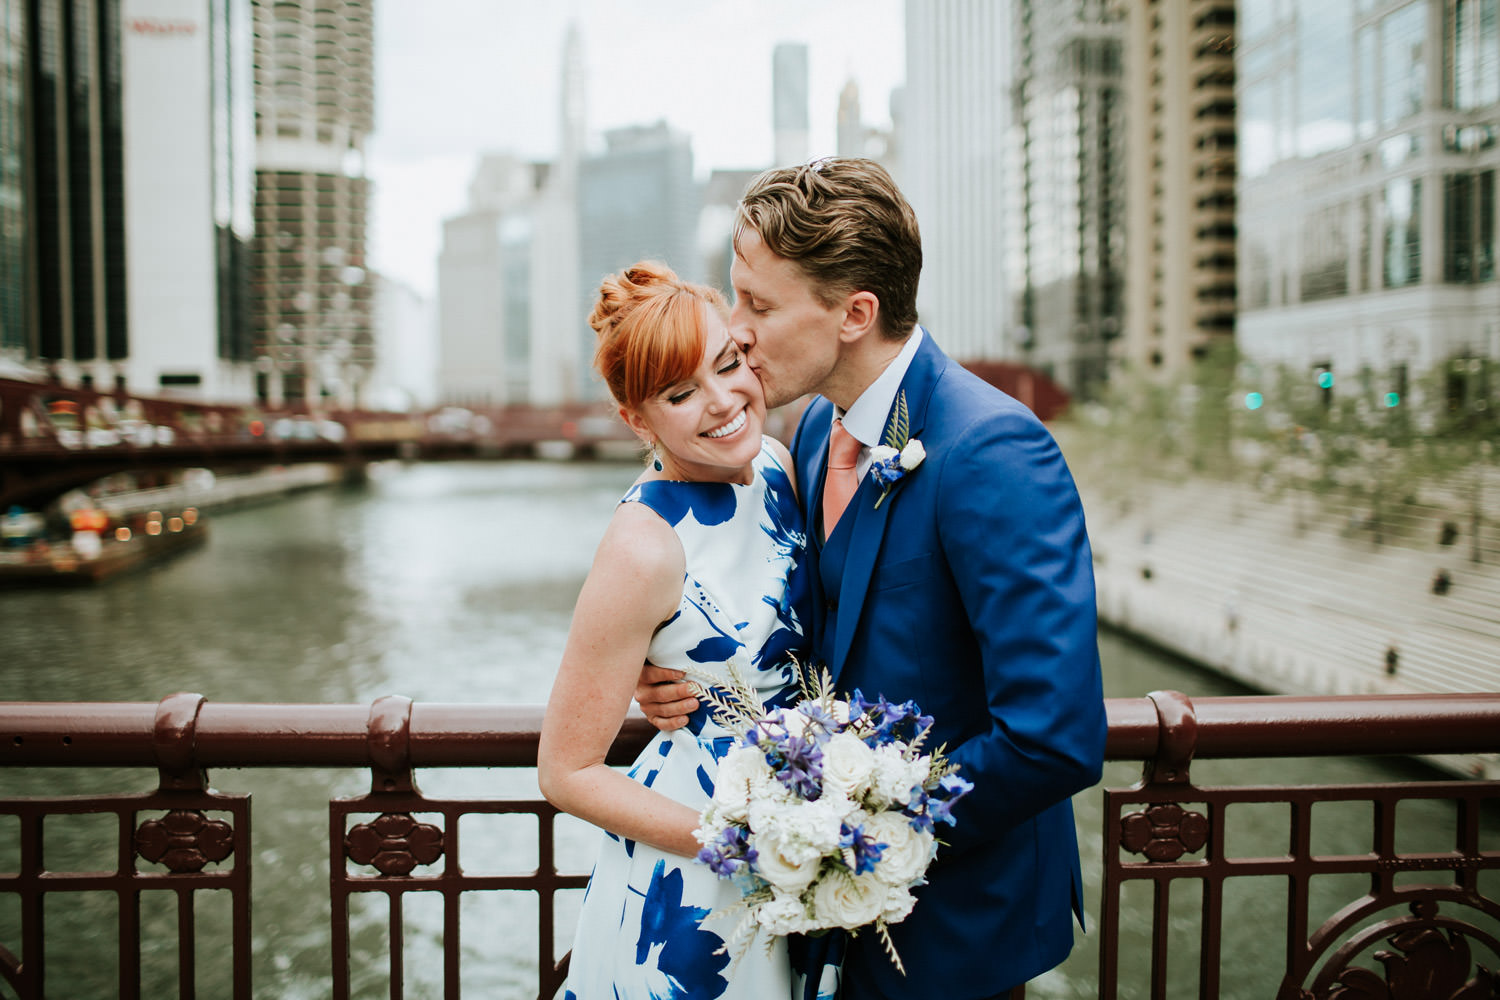 picture of the bride and groom taken on the bridge in down town Chicago